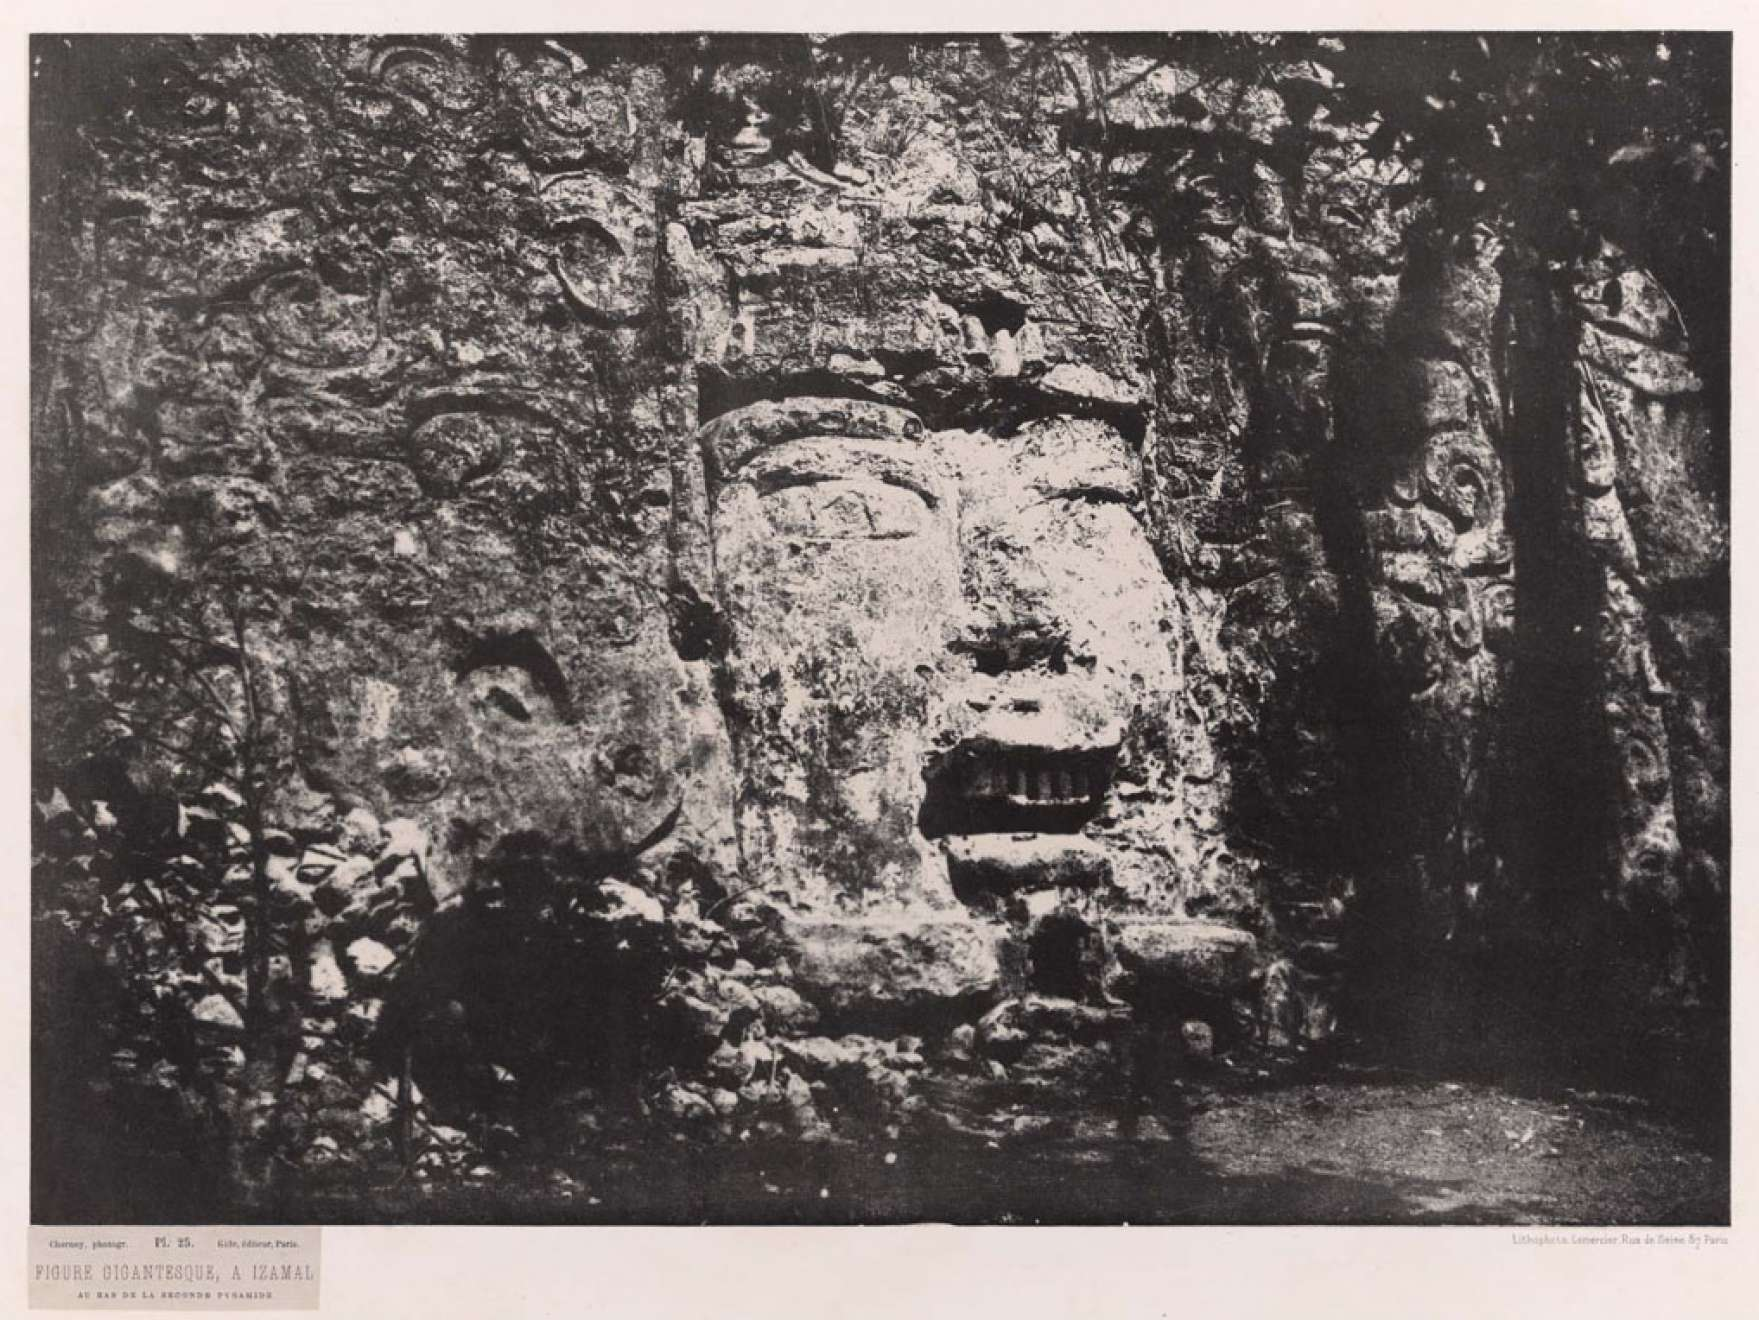 Désiré Charnay's Photolithograph of Colossal head at the base of a pyramid in Izamal, Mexico, 1860.